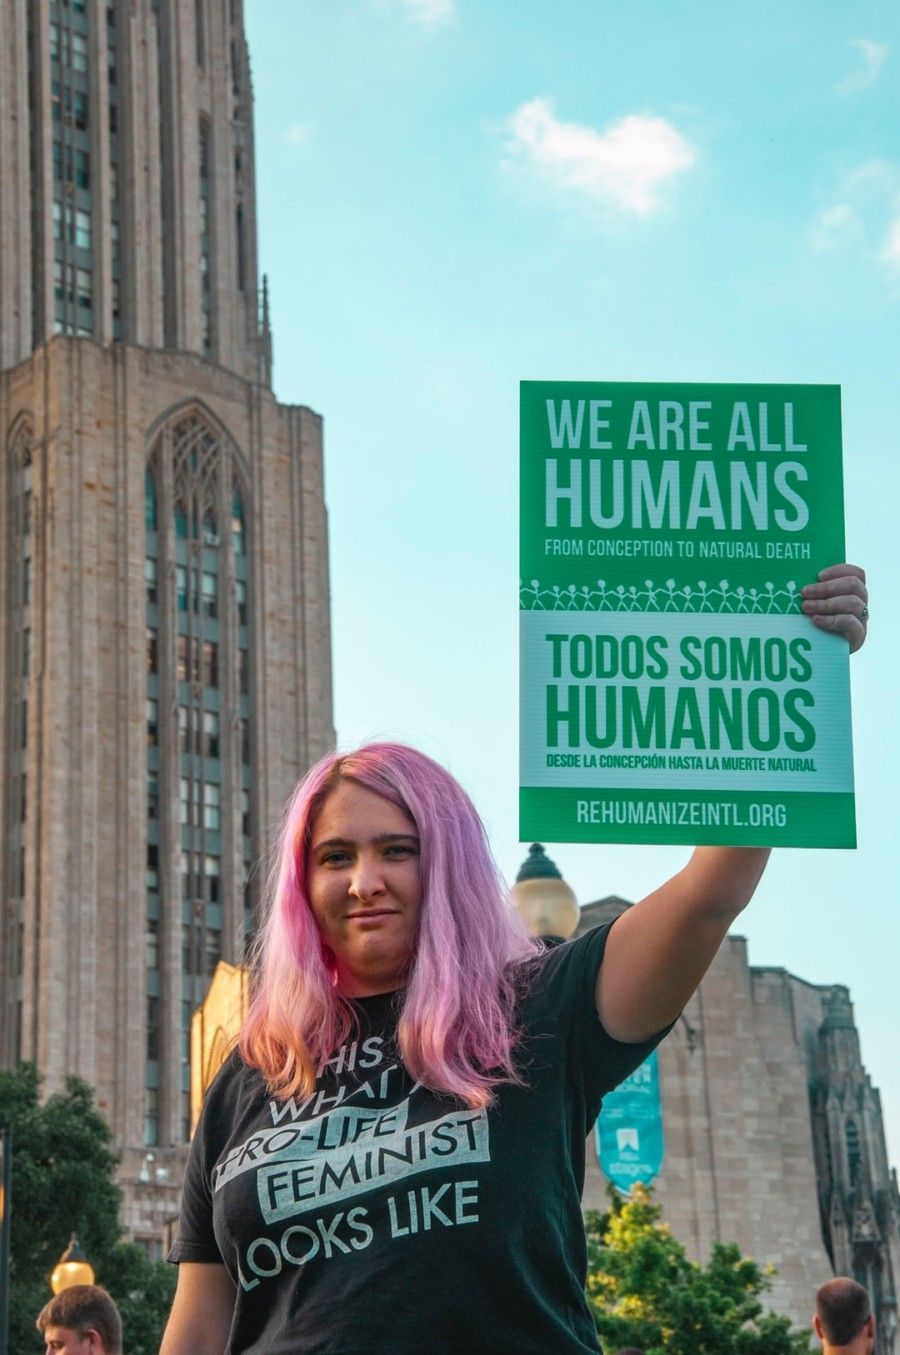 woman-with-pink-hair-holding-green-placard